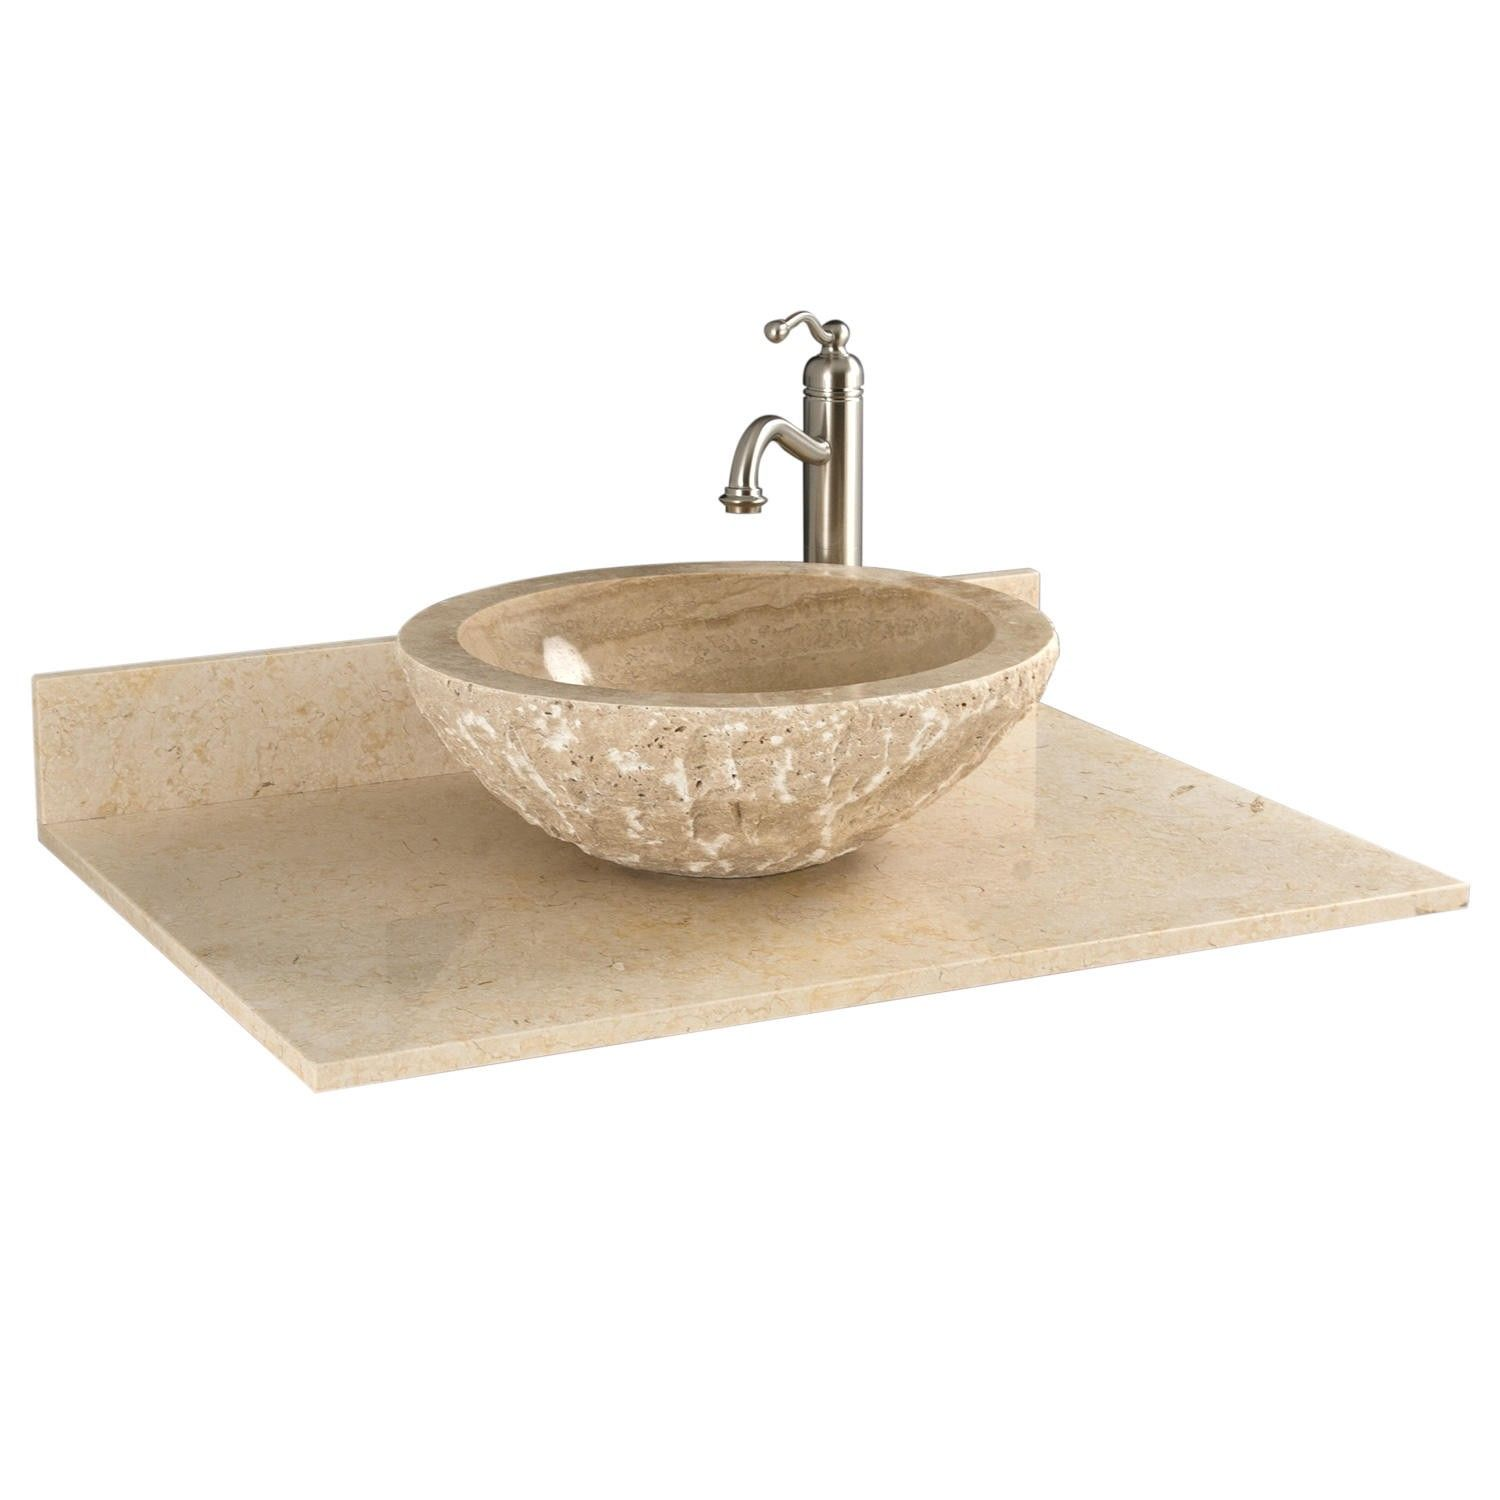 31 X 22 Marble Vanity Top For Vessel Sink Vessel Sink Vanity